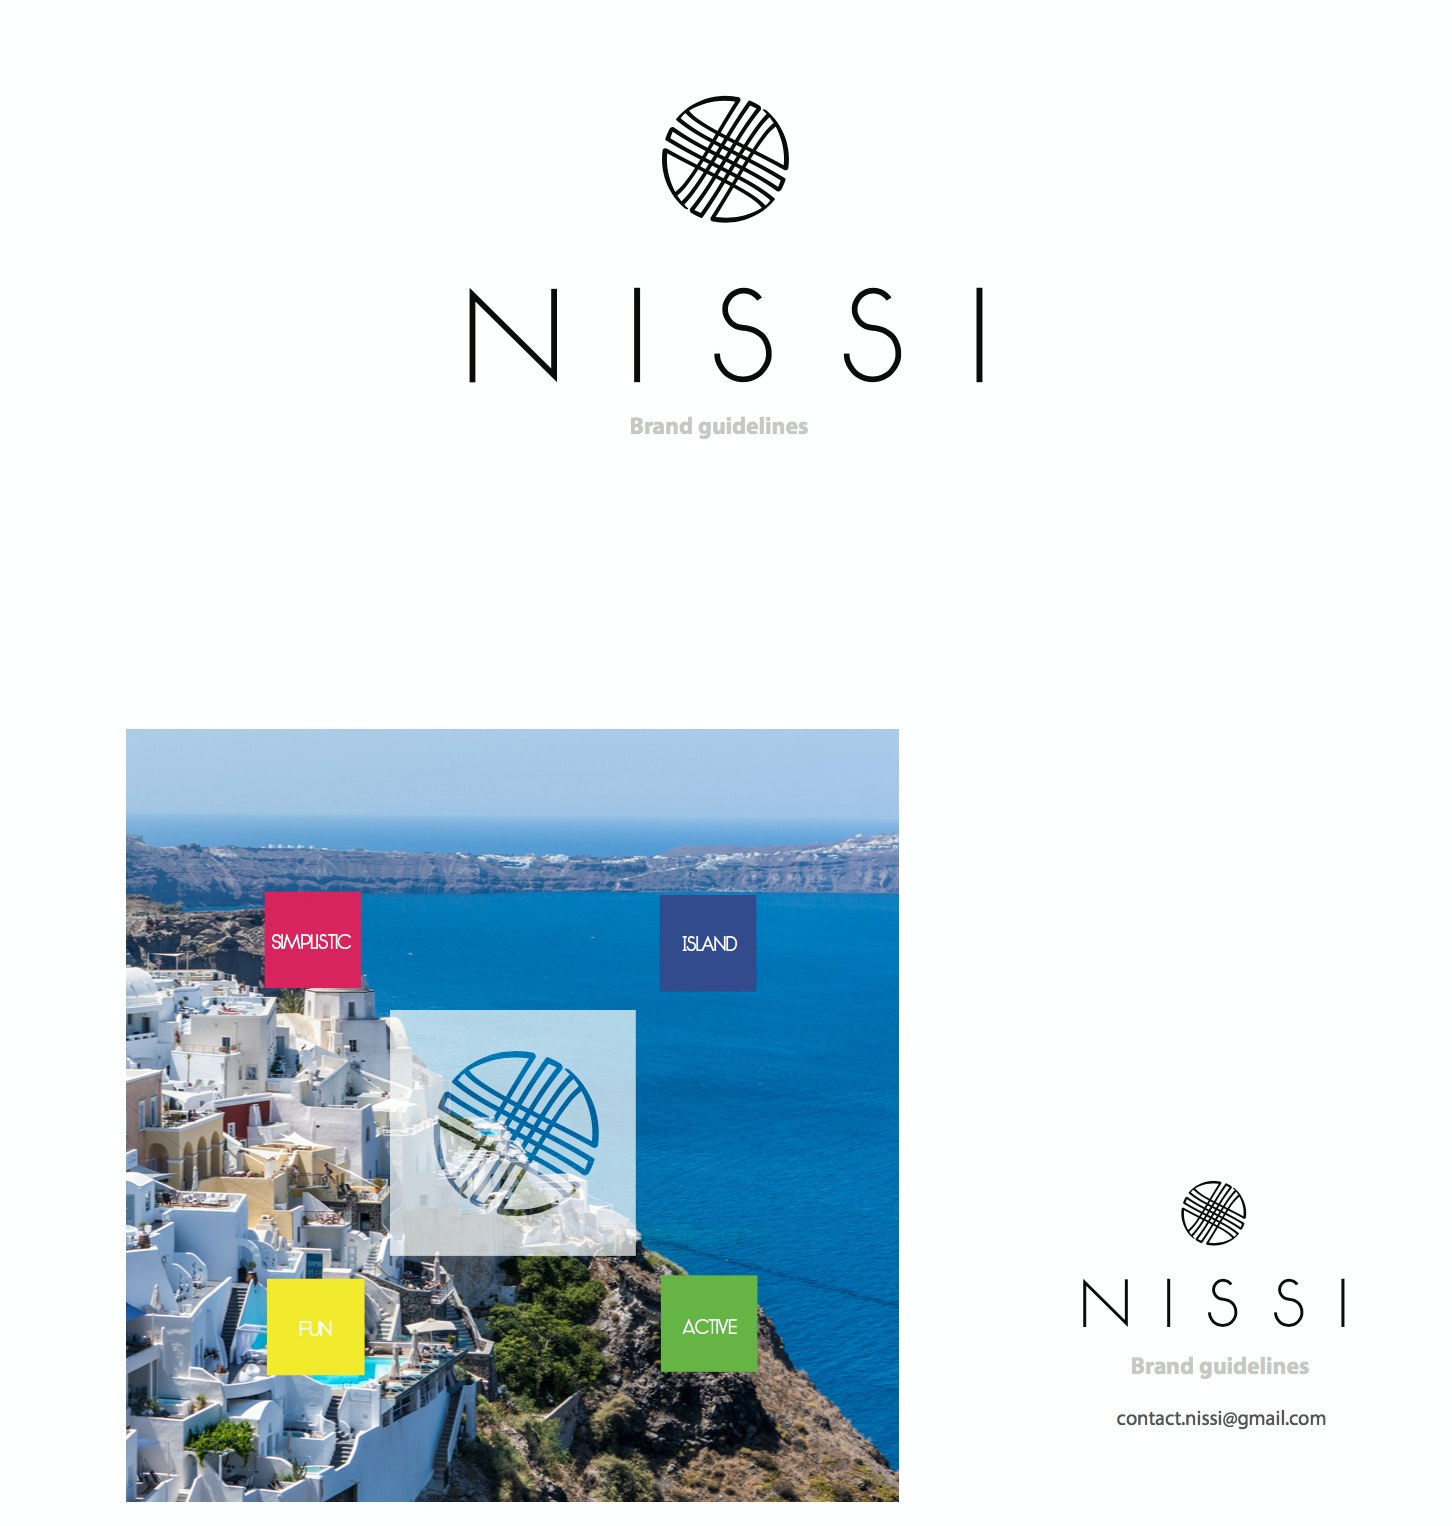 NISSI brand style guide